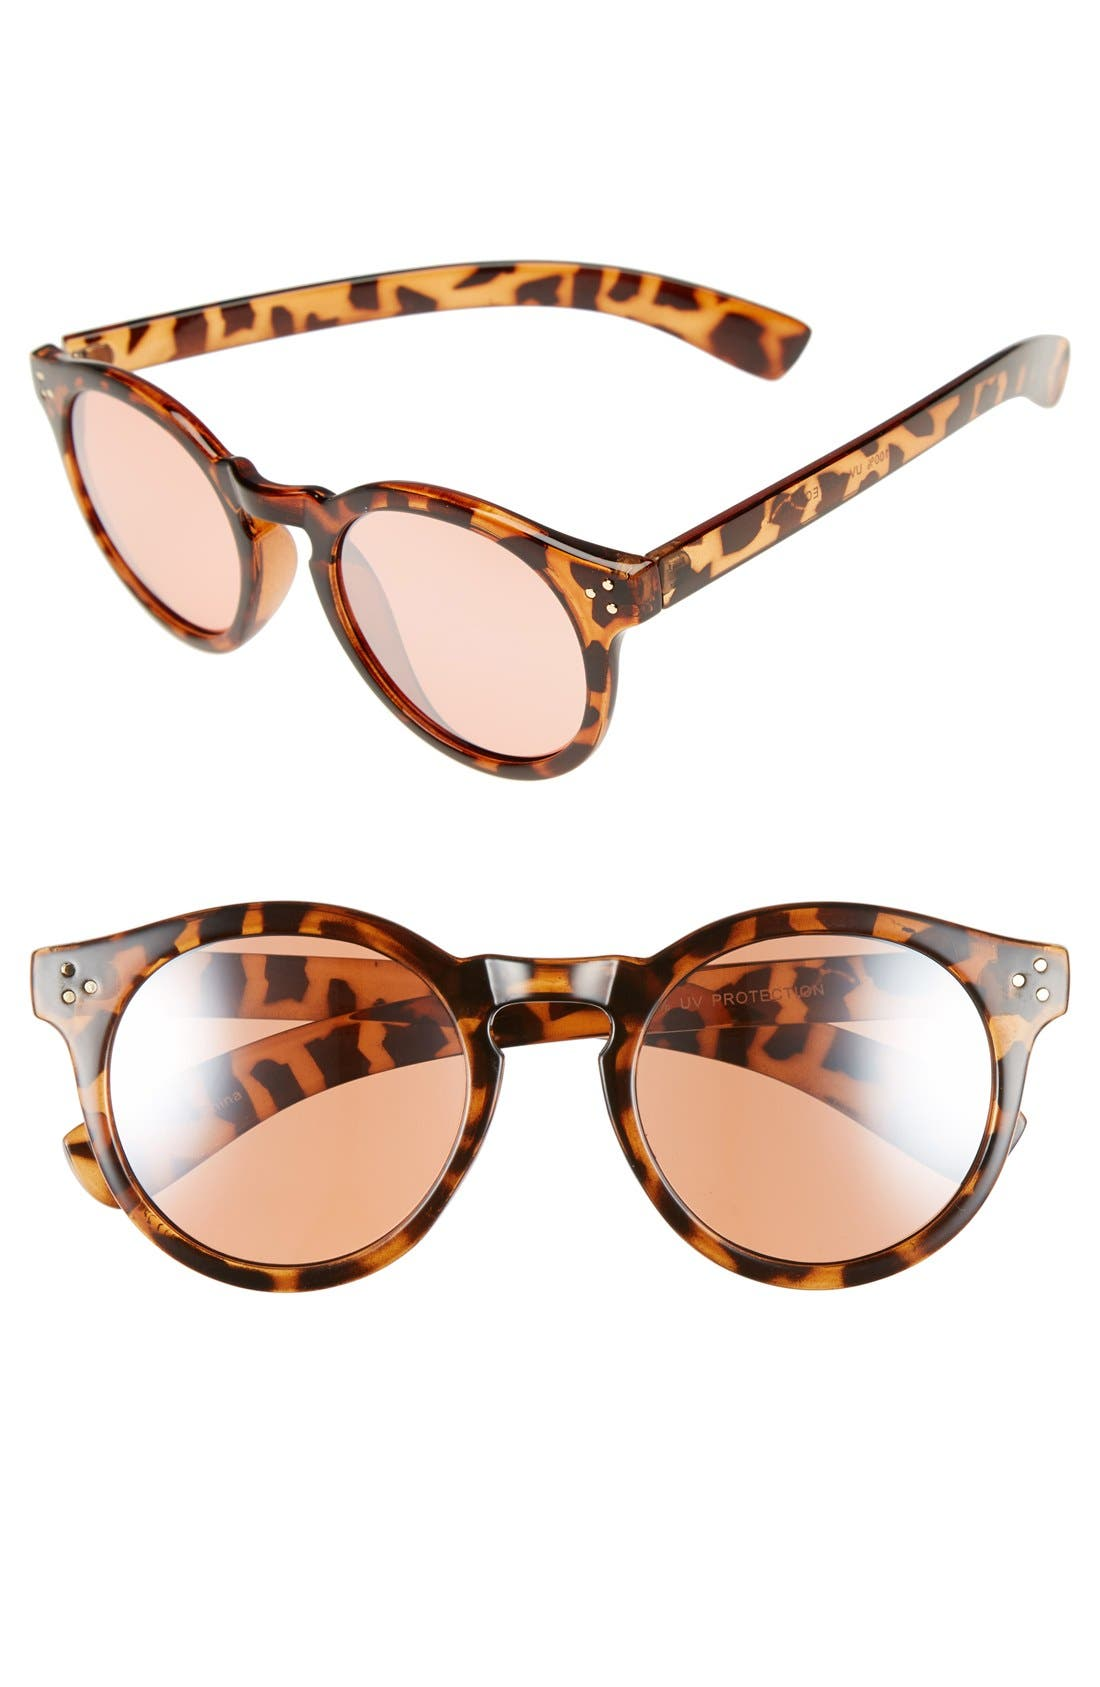 50mm Mirrored Round Sunglasses,                             Main thumbnail 1, color,                             040